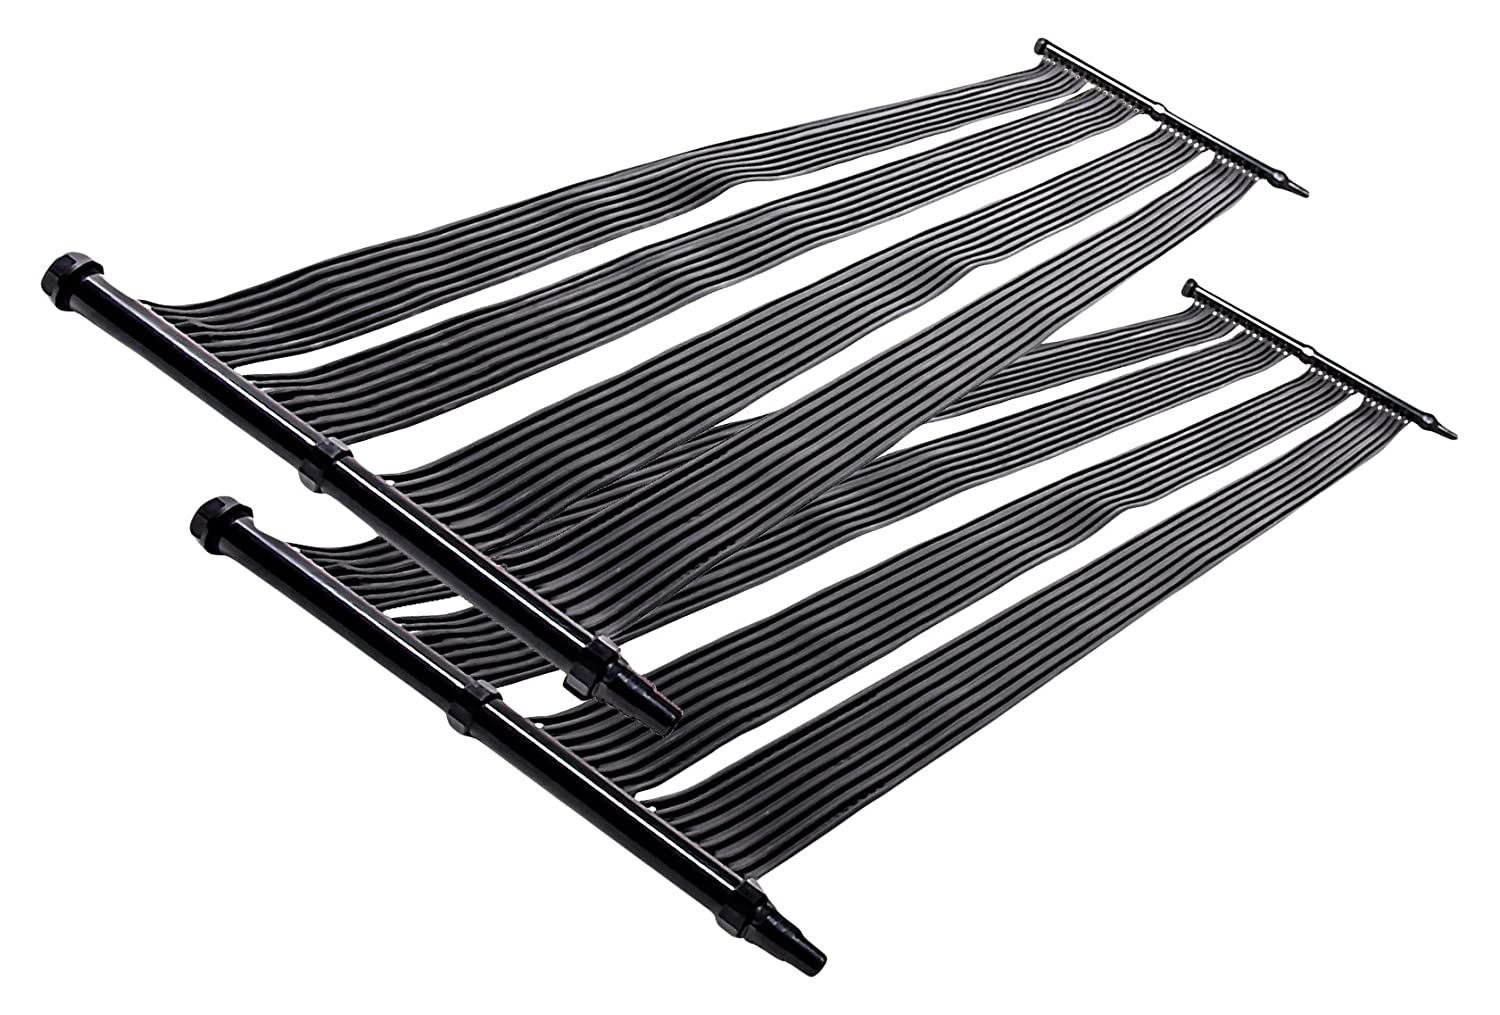 Nemaxx 2x SH6000 Solarheater 6.6 yards - solar pool heating, solar heating, swimming pool heating mat, swimming pool solar collector, warm water processing 6936